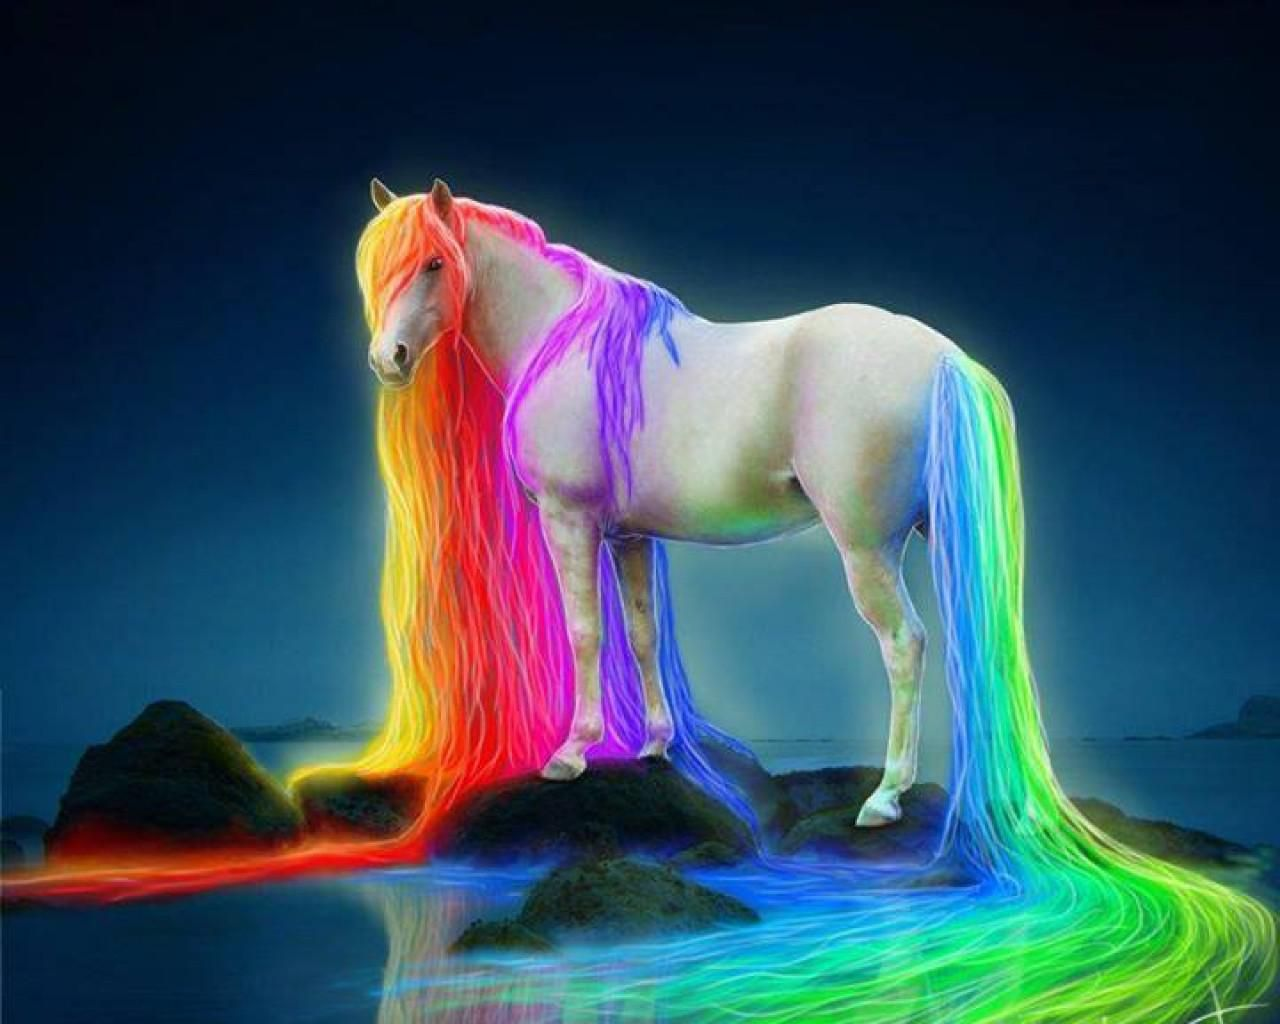 Beautiful Wallpaper Horse Colorful - 8adffe6d8d568372051e4e26d8915f6b  HD_639218.jpg